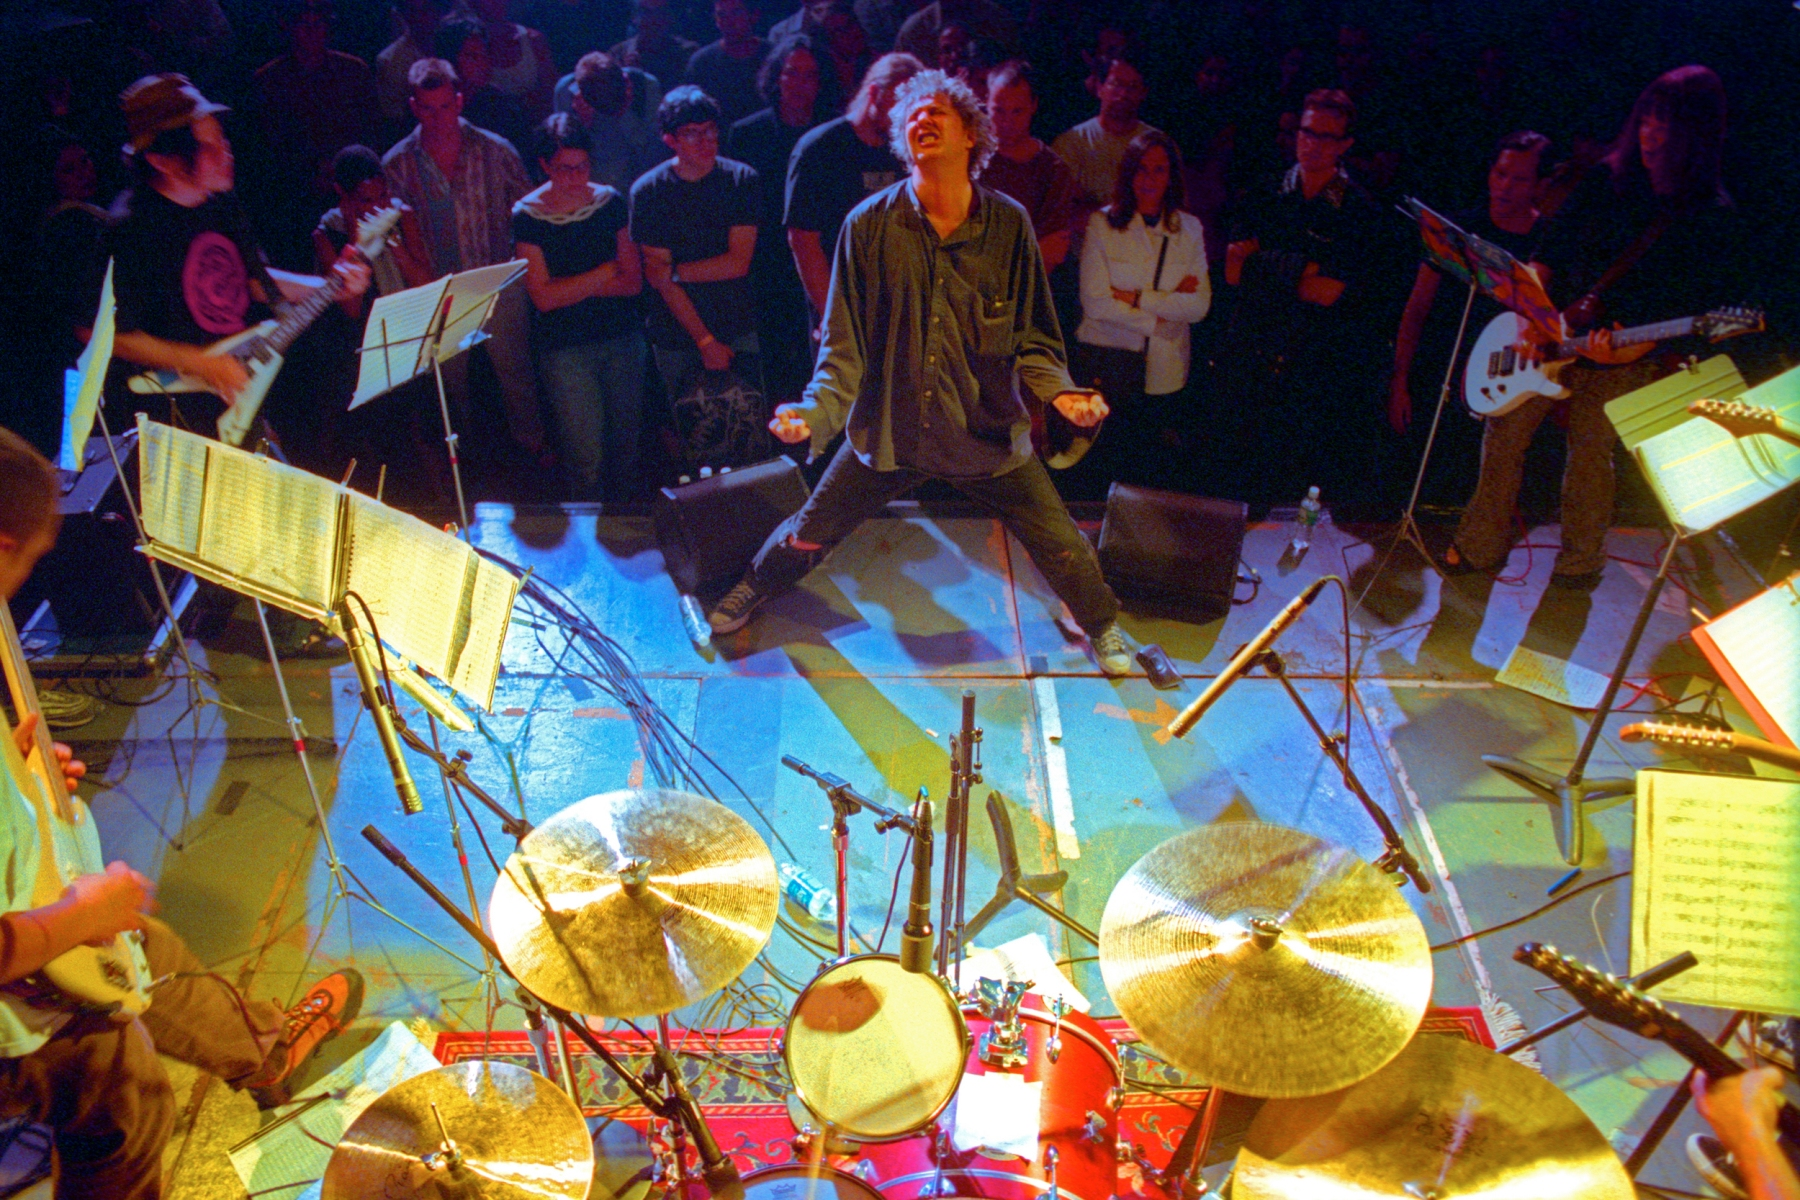 Glenn Branca conducting his ensemble at the Anchorage in Brookyn on Thursday night, July 20, 2000.(Hiroyuki Ito/Getty Images)